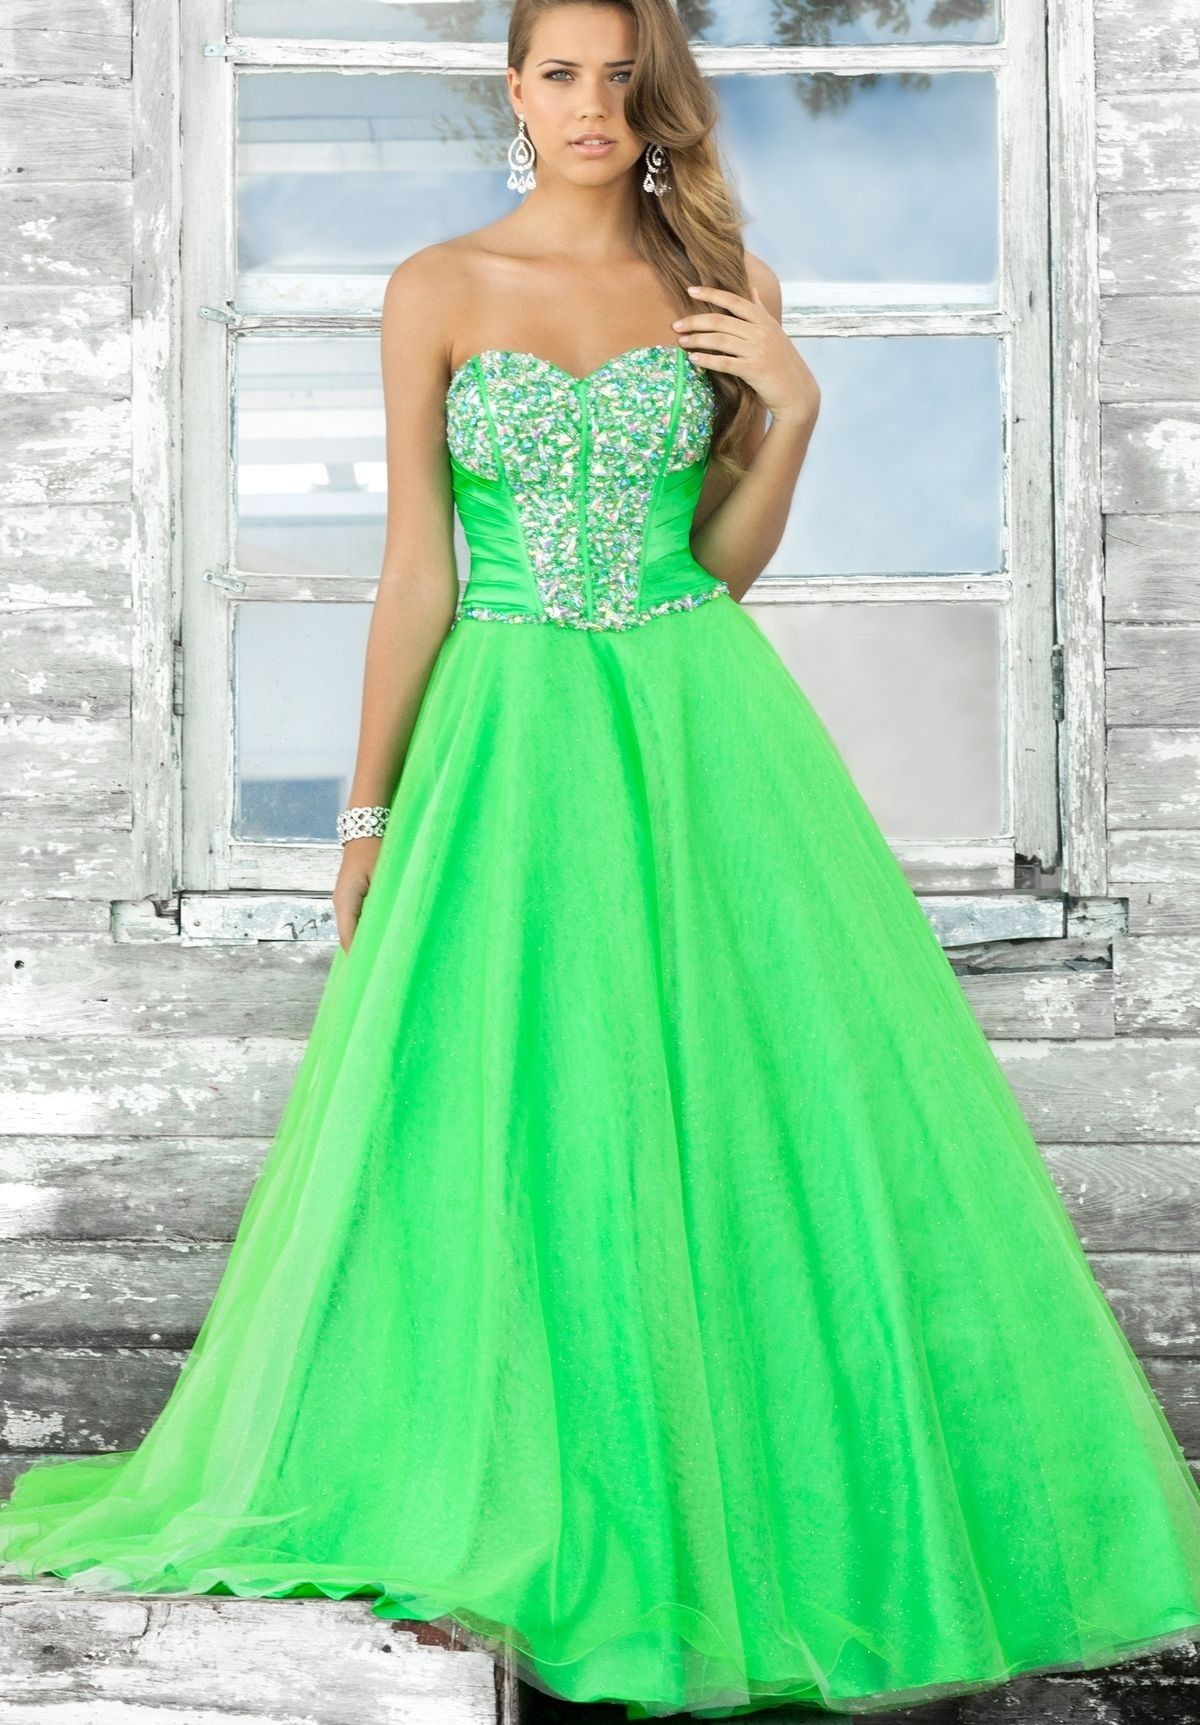 Neon green prom dress..... Awesome | Dresses | Pinterest | Neon ...